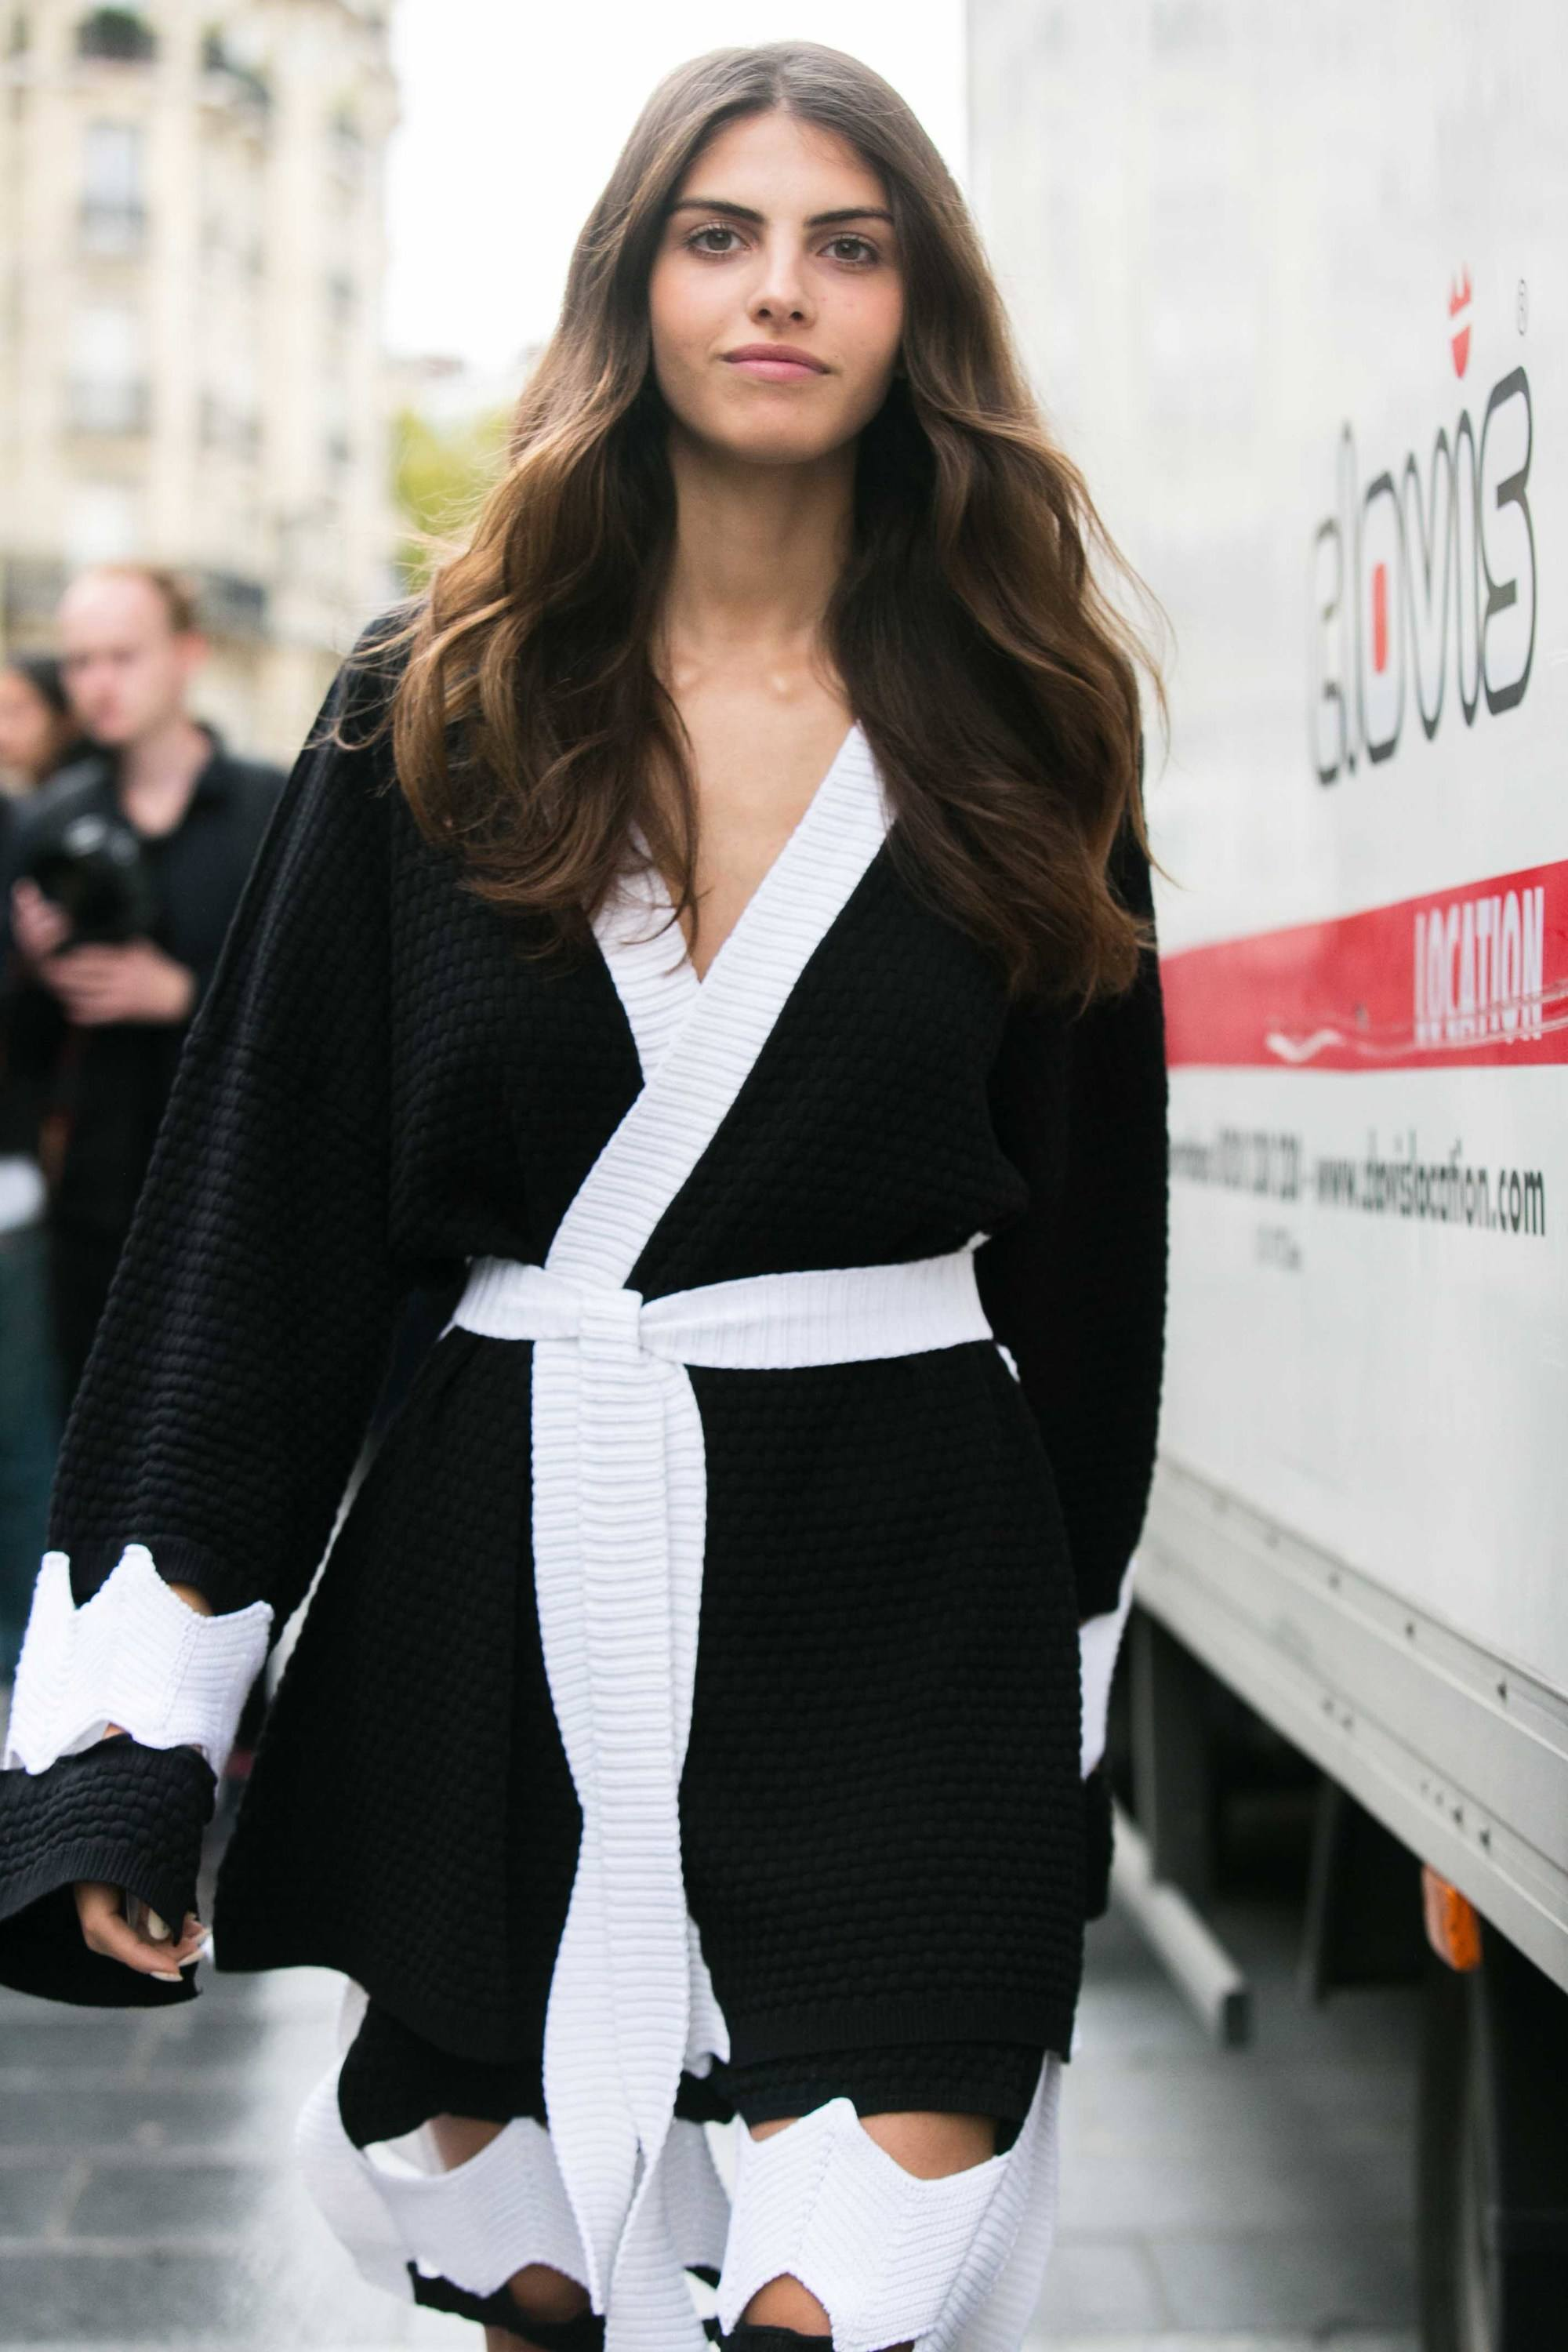 Wavy hair tips Girl with long brunette wavy hair outside a show at fashion week walking